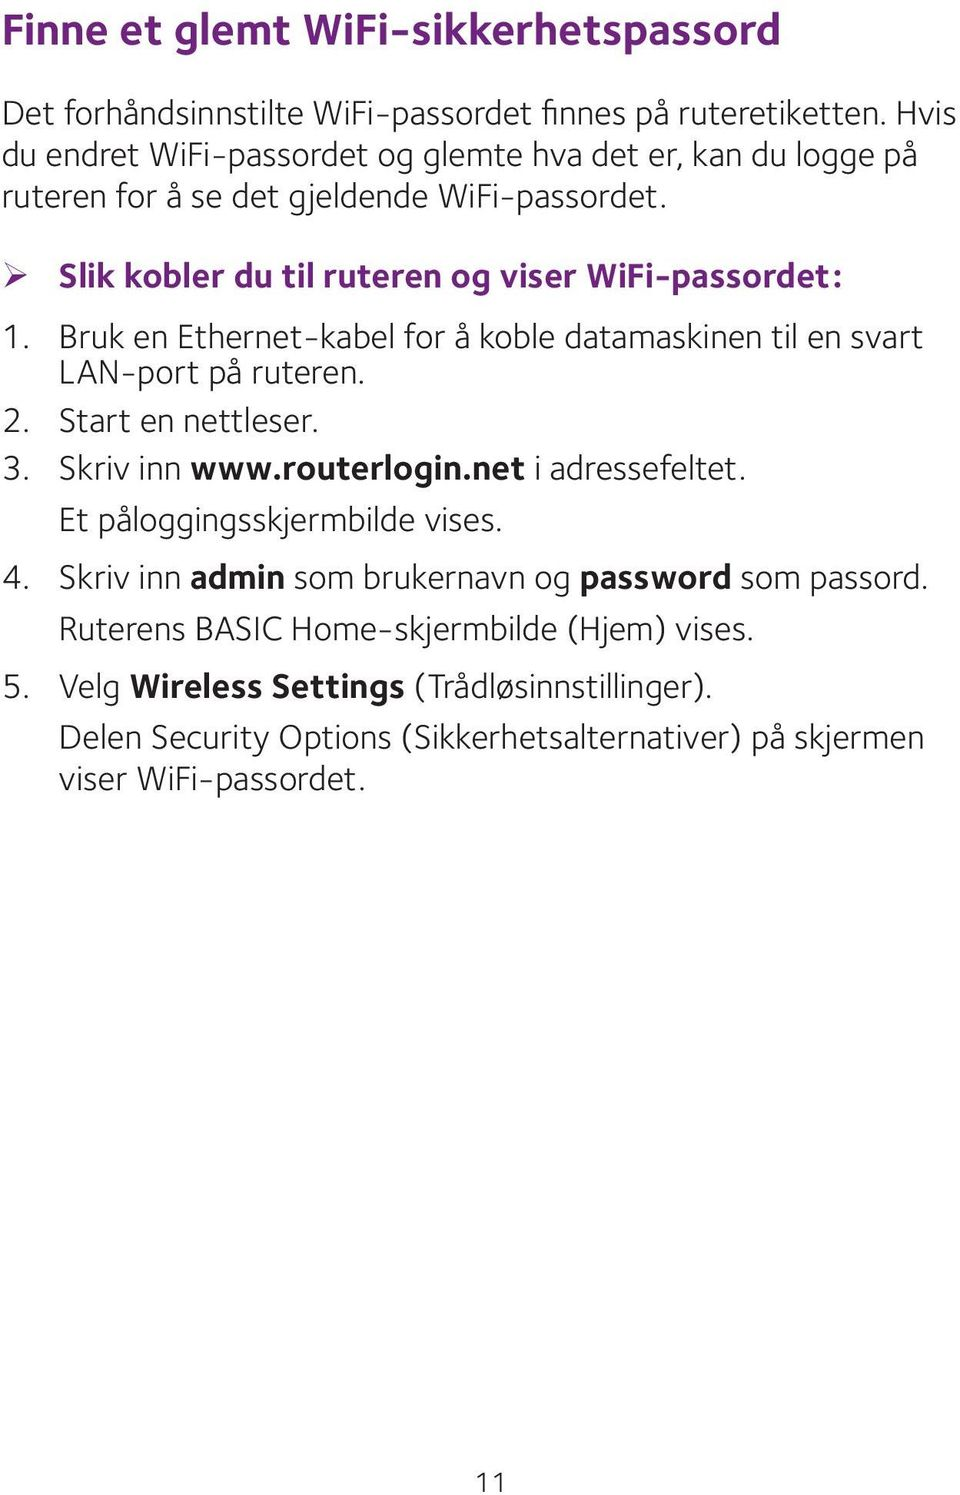 Bruk en Ethernet-kabel for å koble datamaskinen til en svart LAN-port på ruteren. 2. Start en nettleser. 3. Skriv inn www.routerlogin.net i adressefeltet.